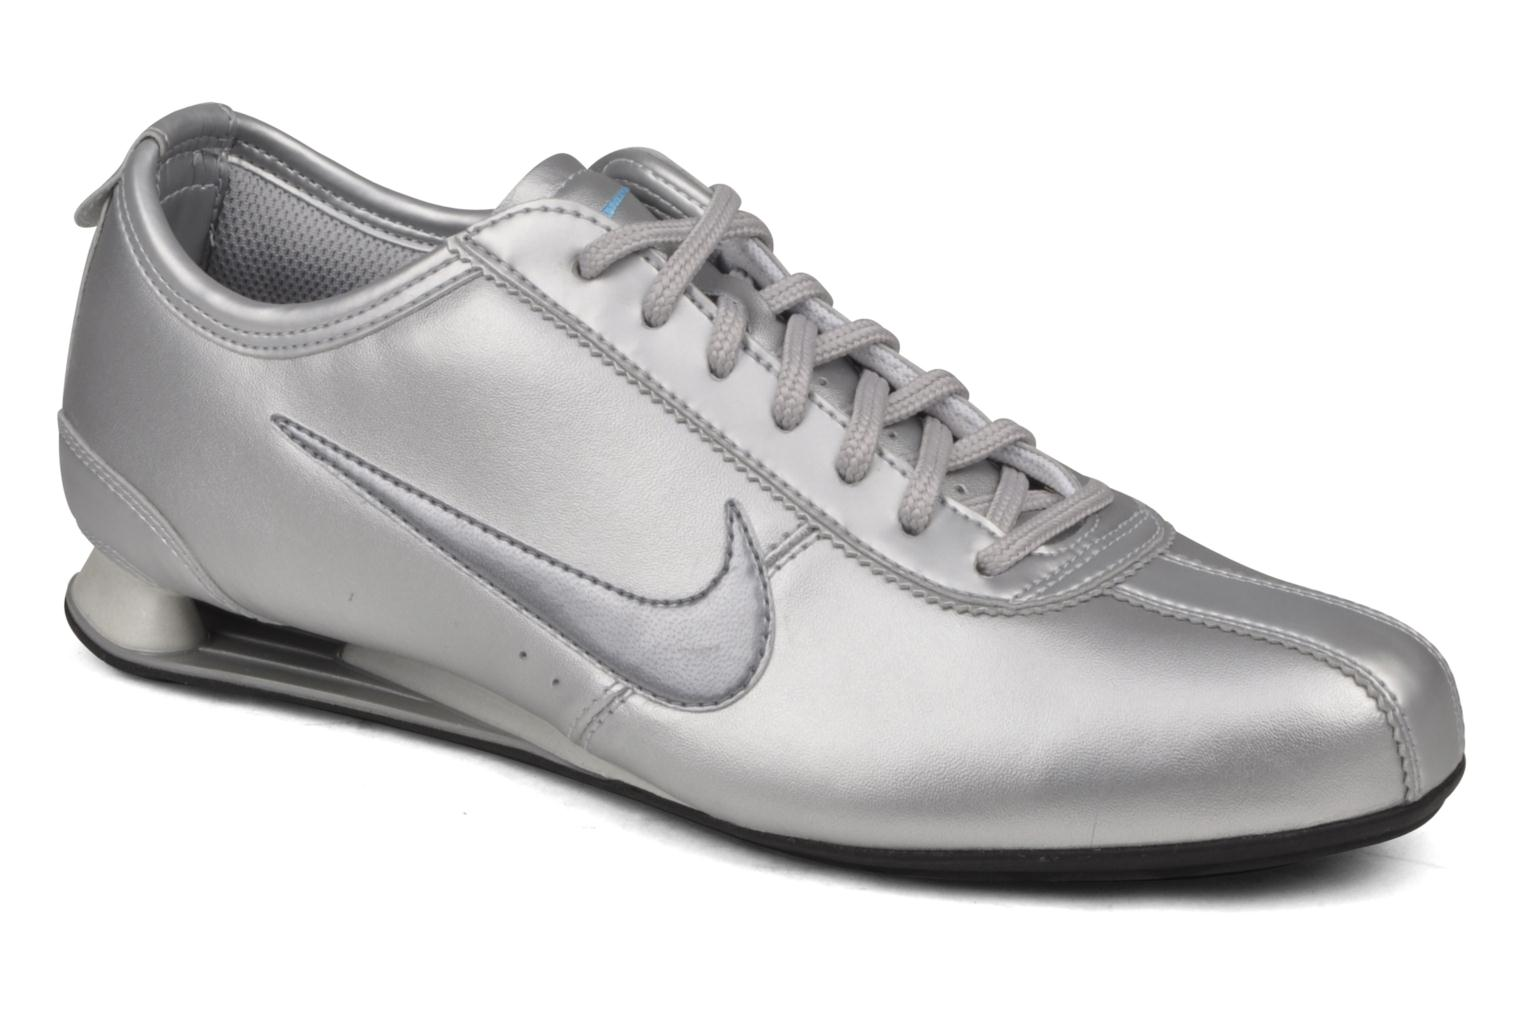 sports shoes 5899c 2c22c ... shop trainers nike nike shox rivalry silver detailed view pair view  37807 4aa8c